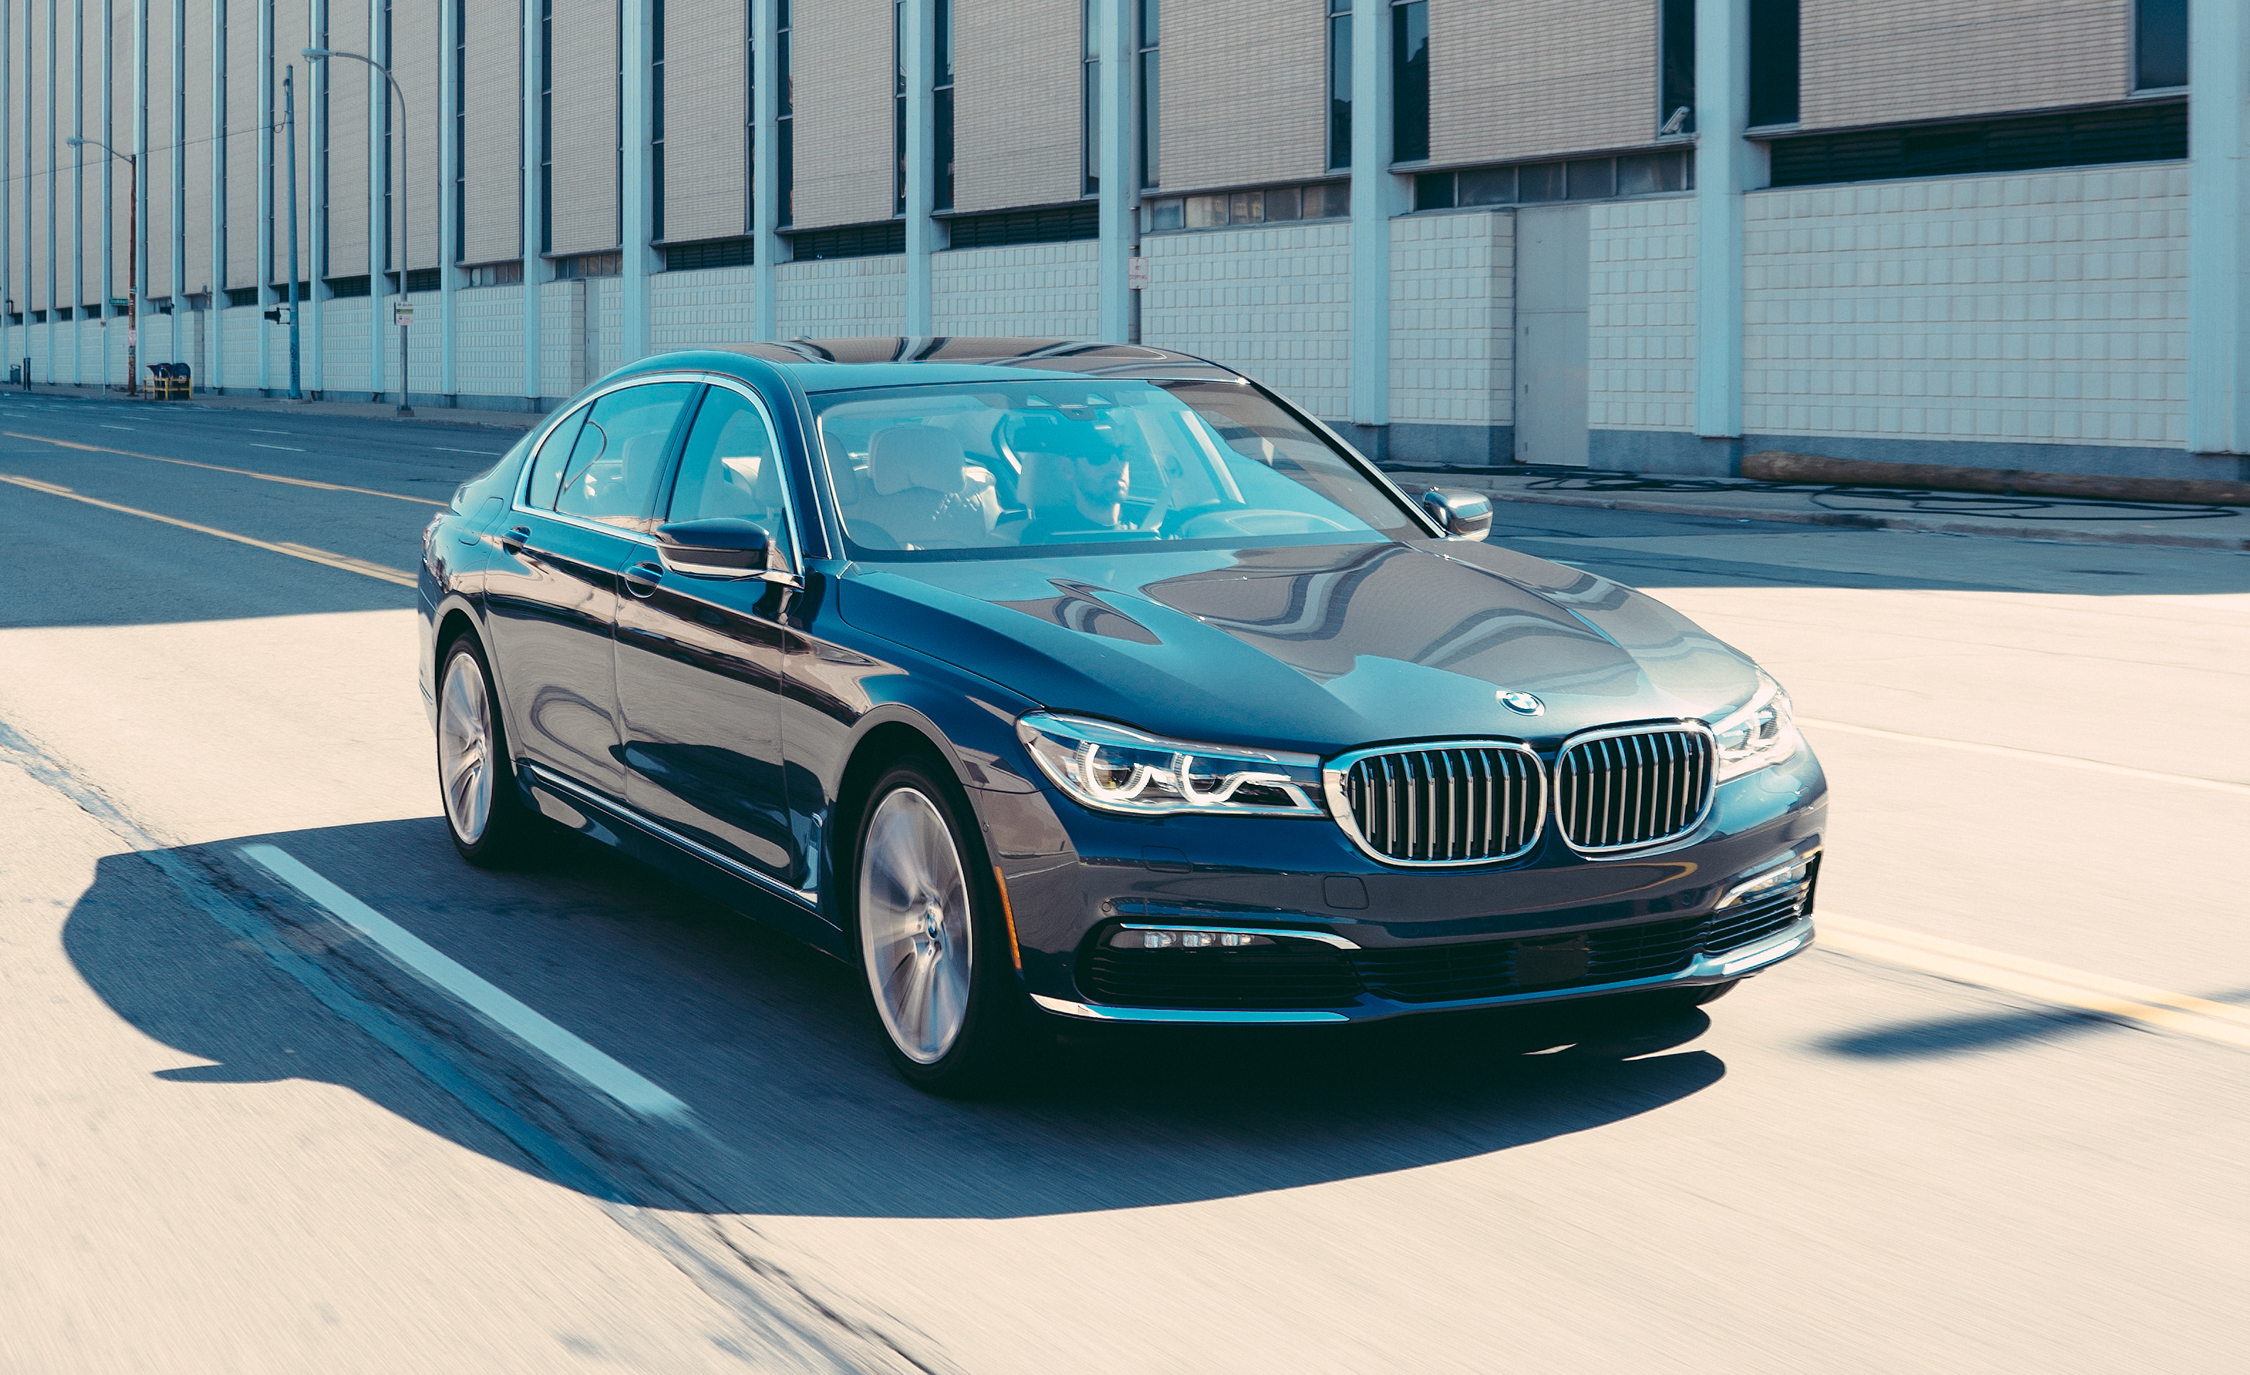 2016 BMW 750i XDrive (View 18 of 29)